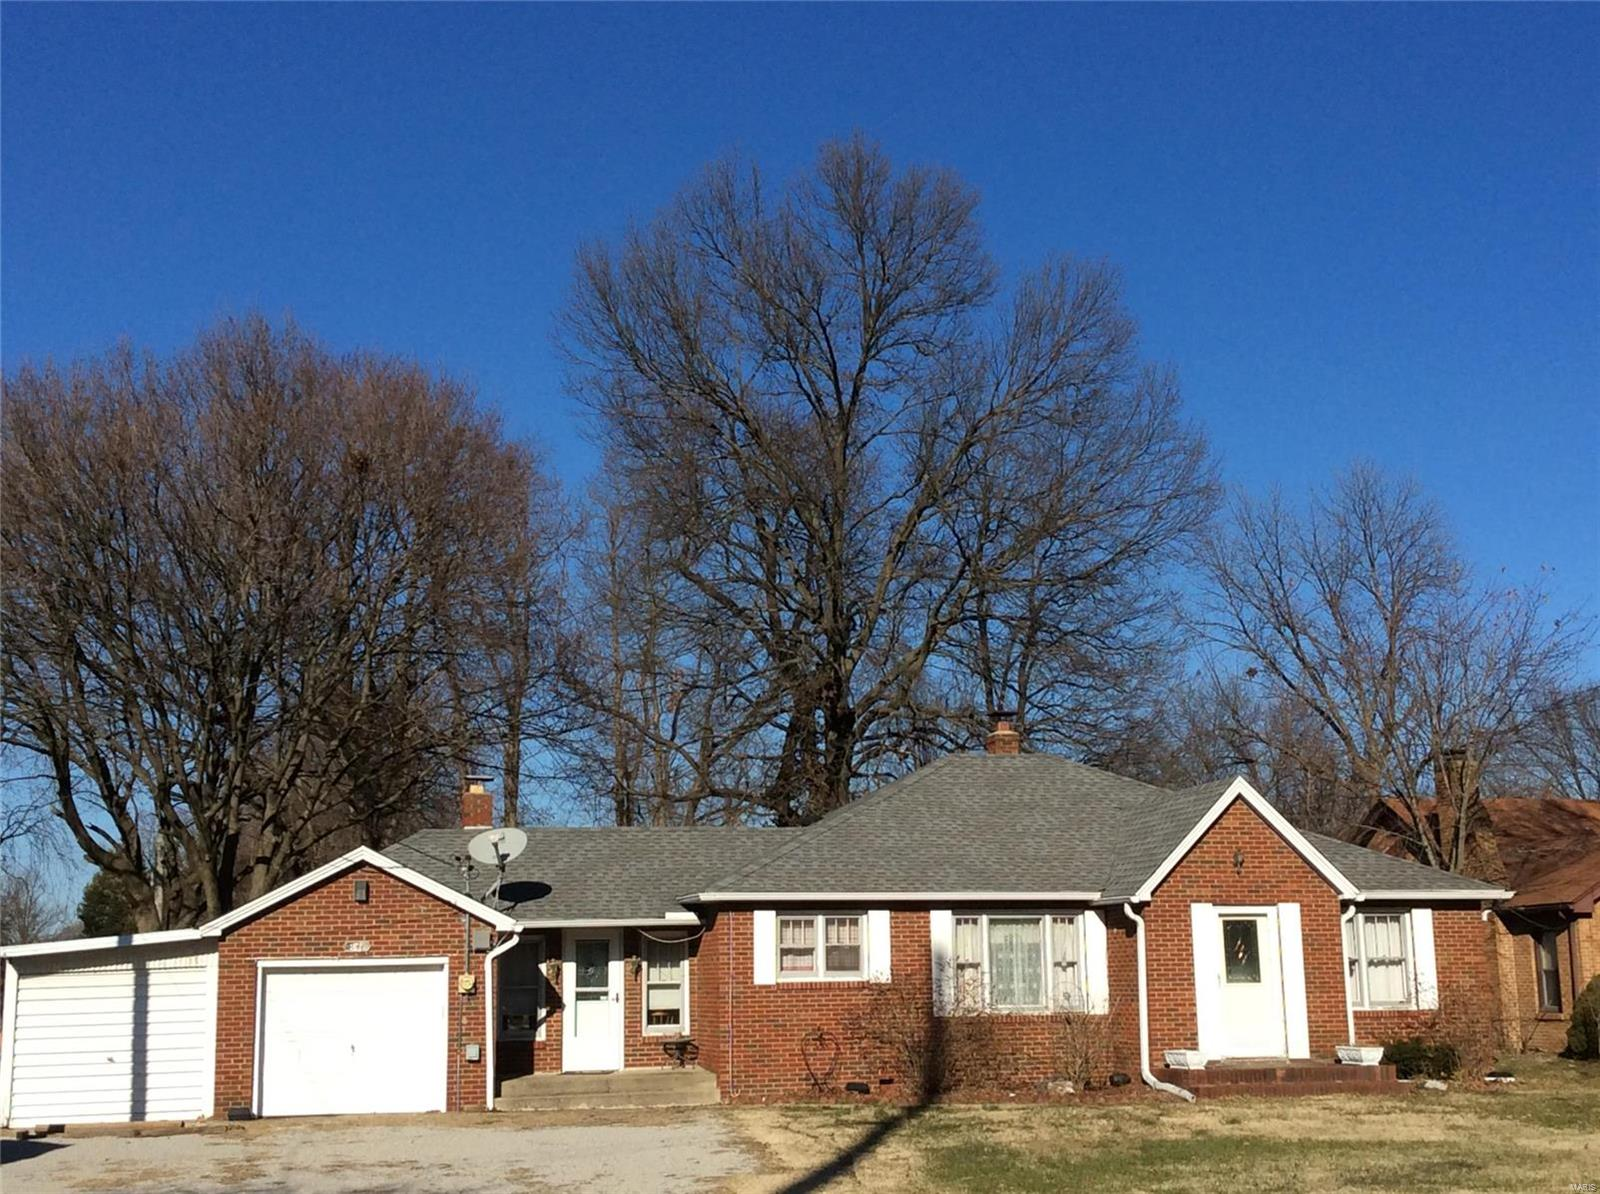 846 E Airline Property Photo - East Alton, IL real estate listing